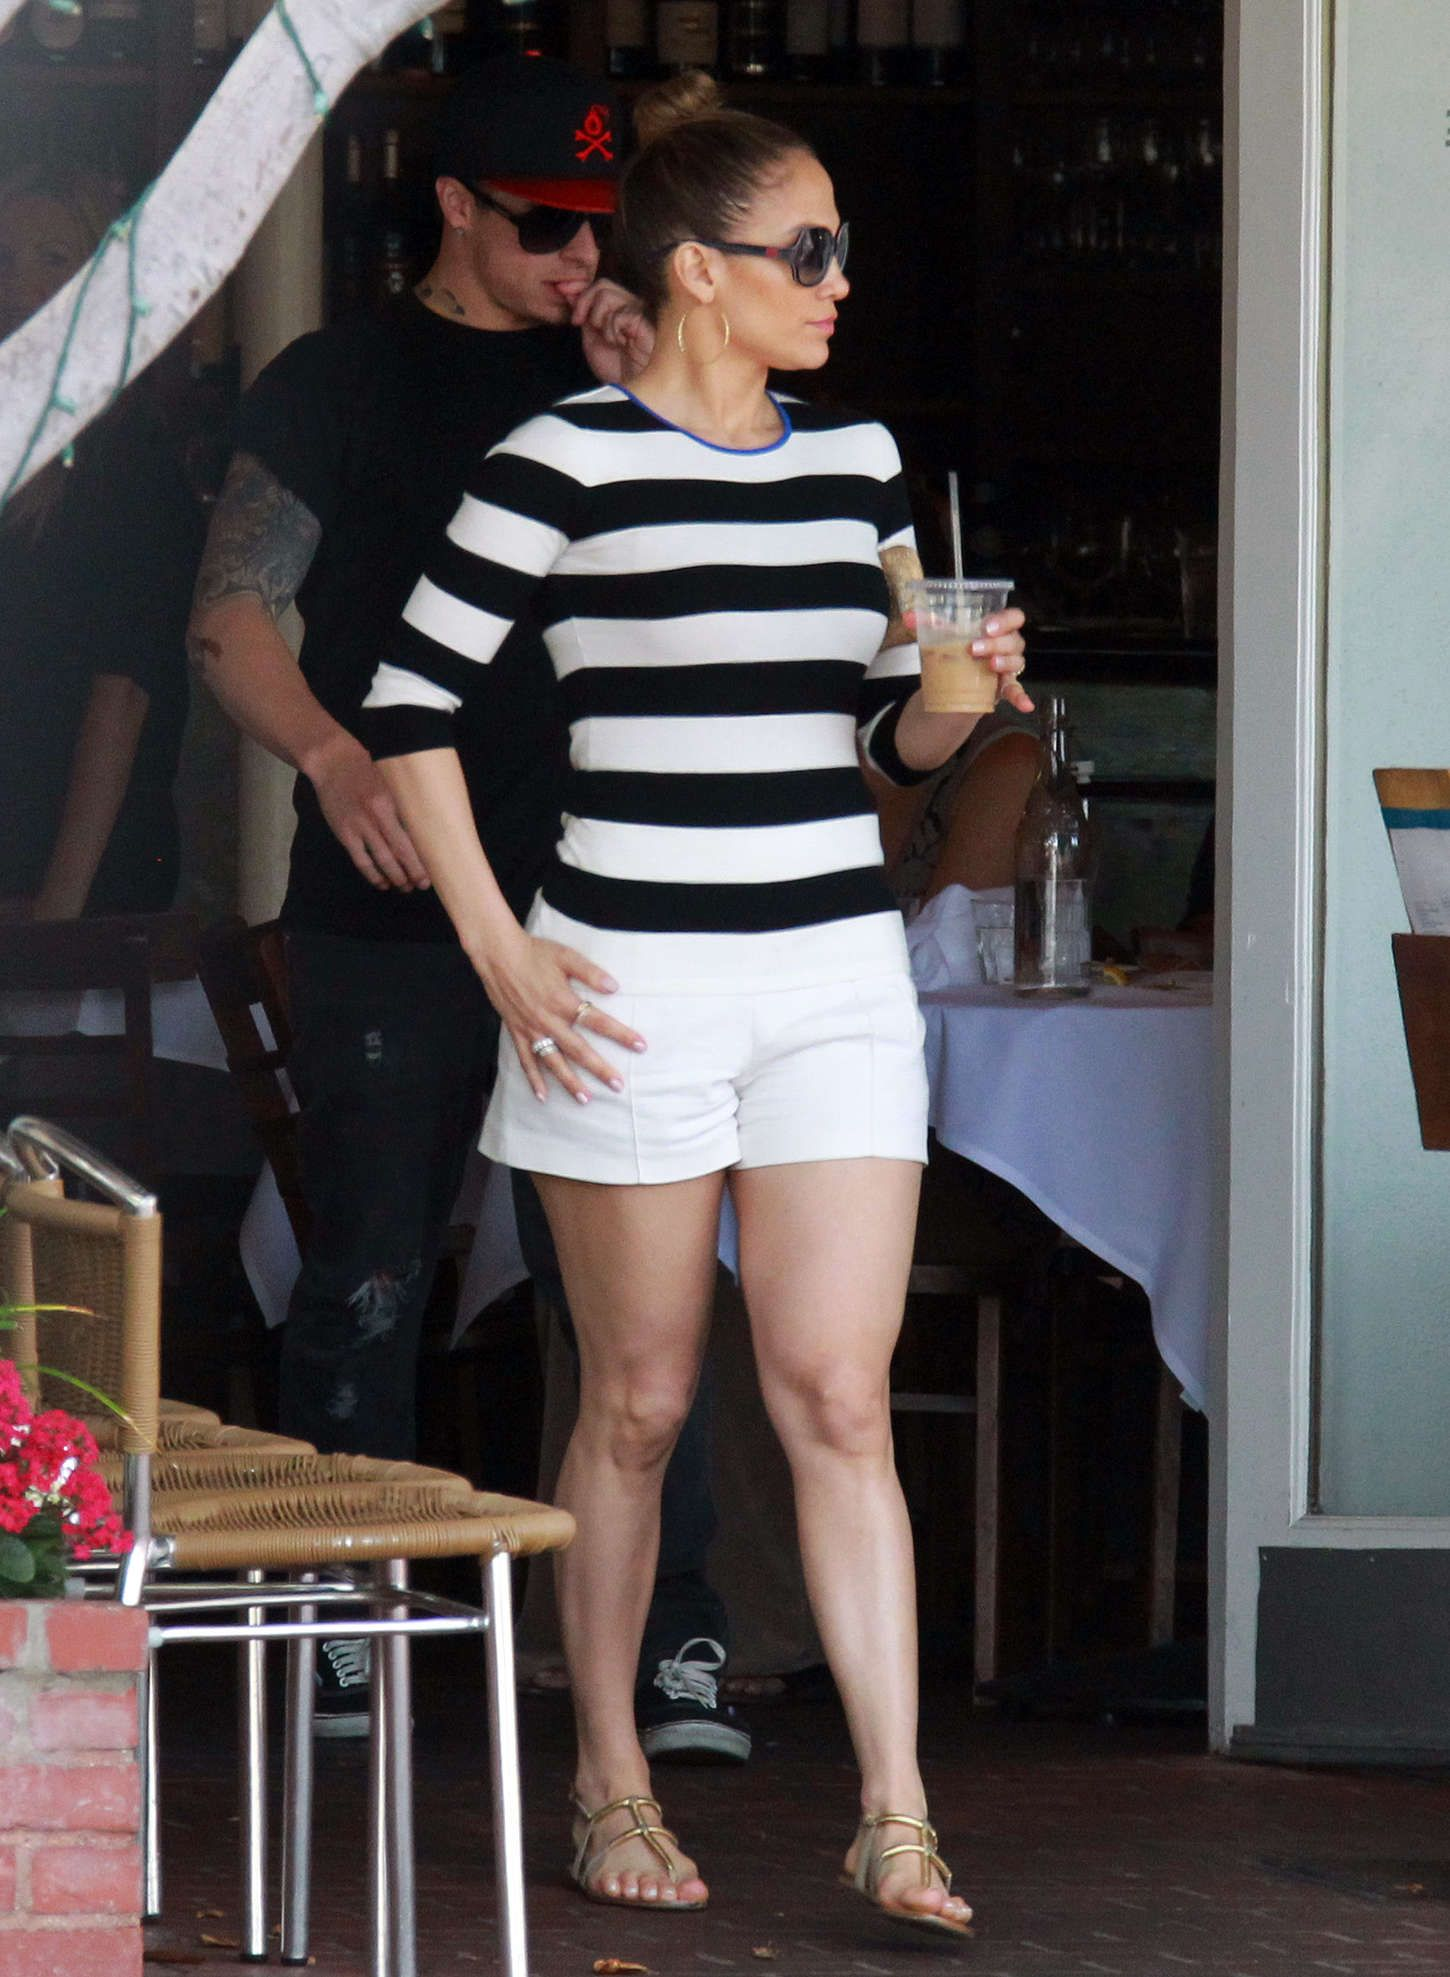 df2ce5342afc Jennifer Lopez Pear shape shorts and top off with strip shirt to draw  attention upward and the strips balance out her top half to bottom half